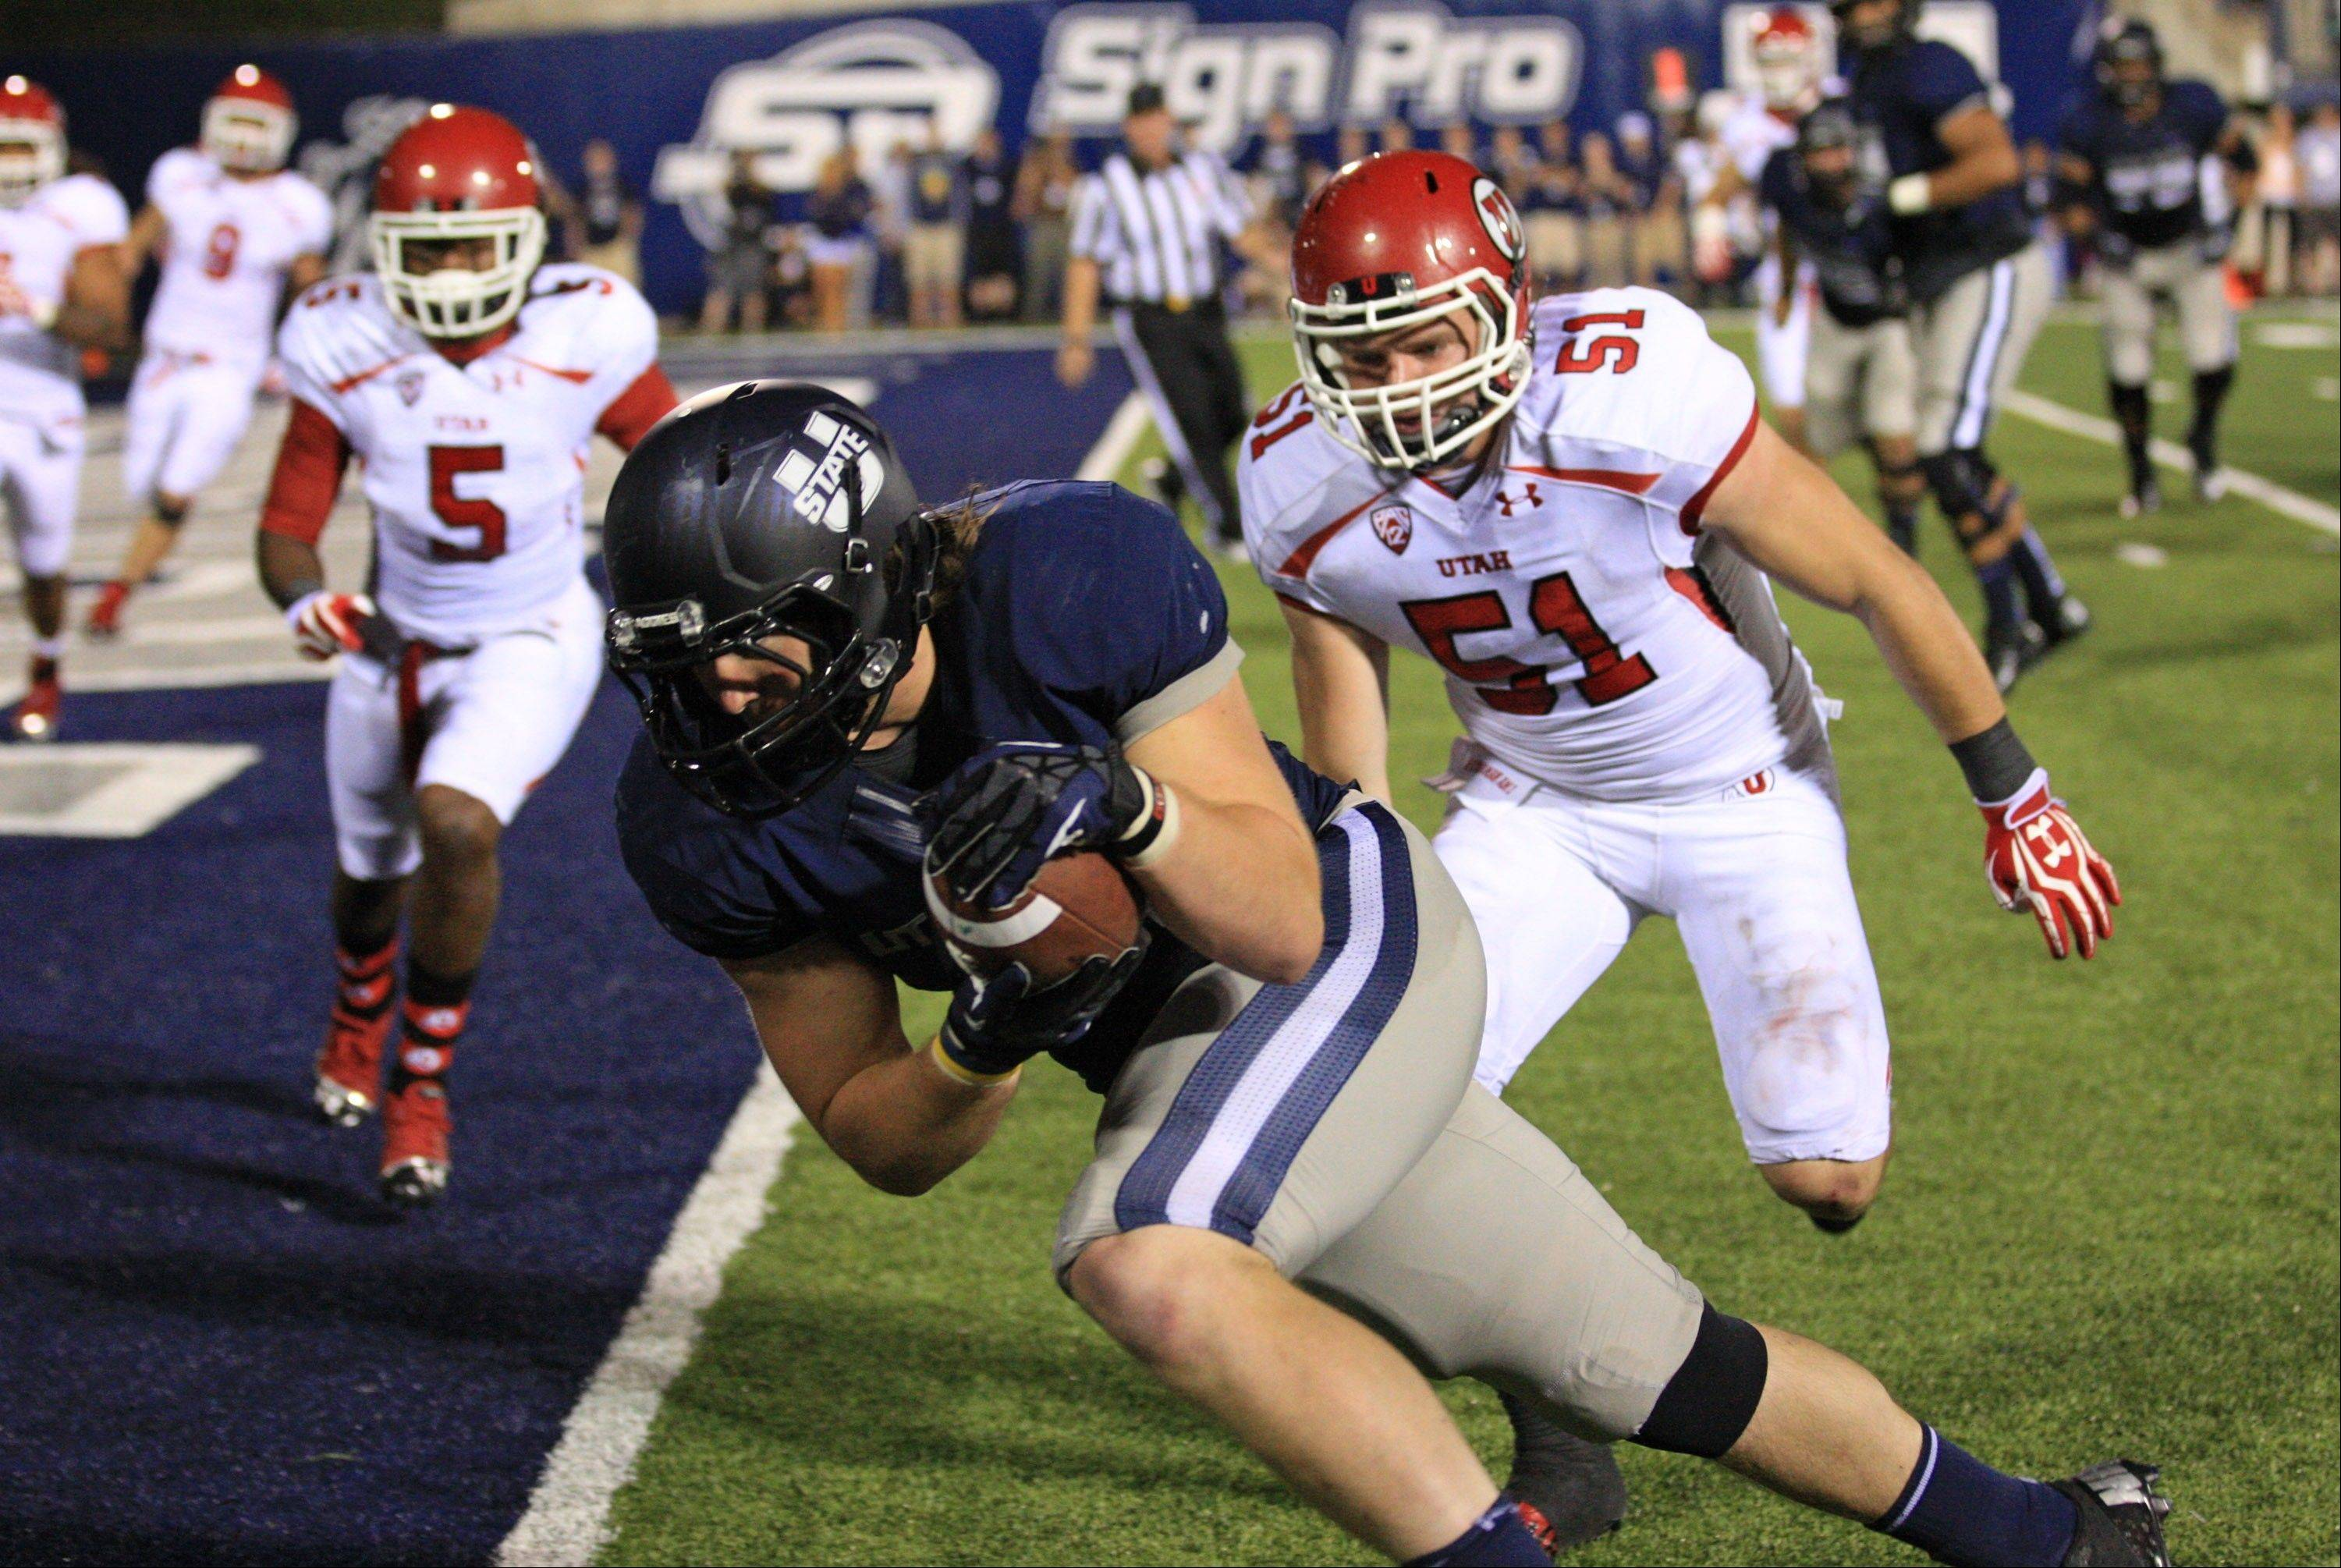 Utah State tight end Kellen Bartlett scores as Utah linebacker Dave Fagergren pursues during the second half Friday in Logan, Utah.